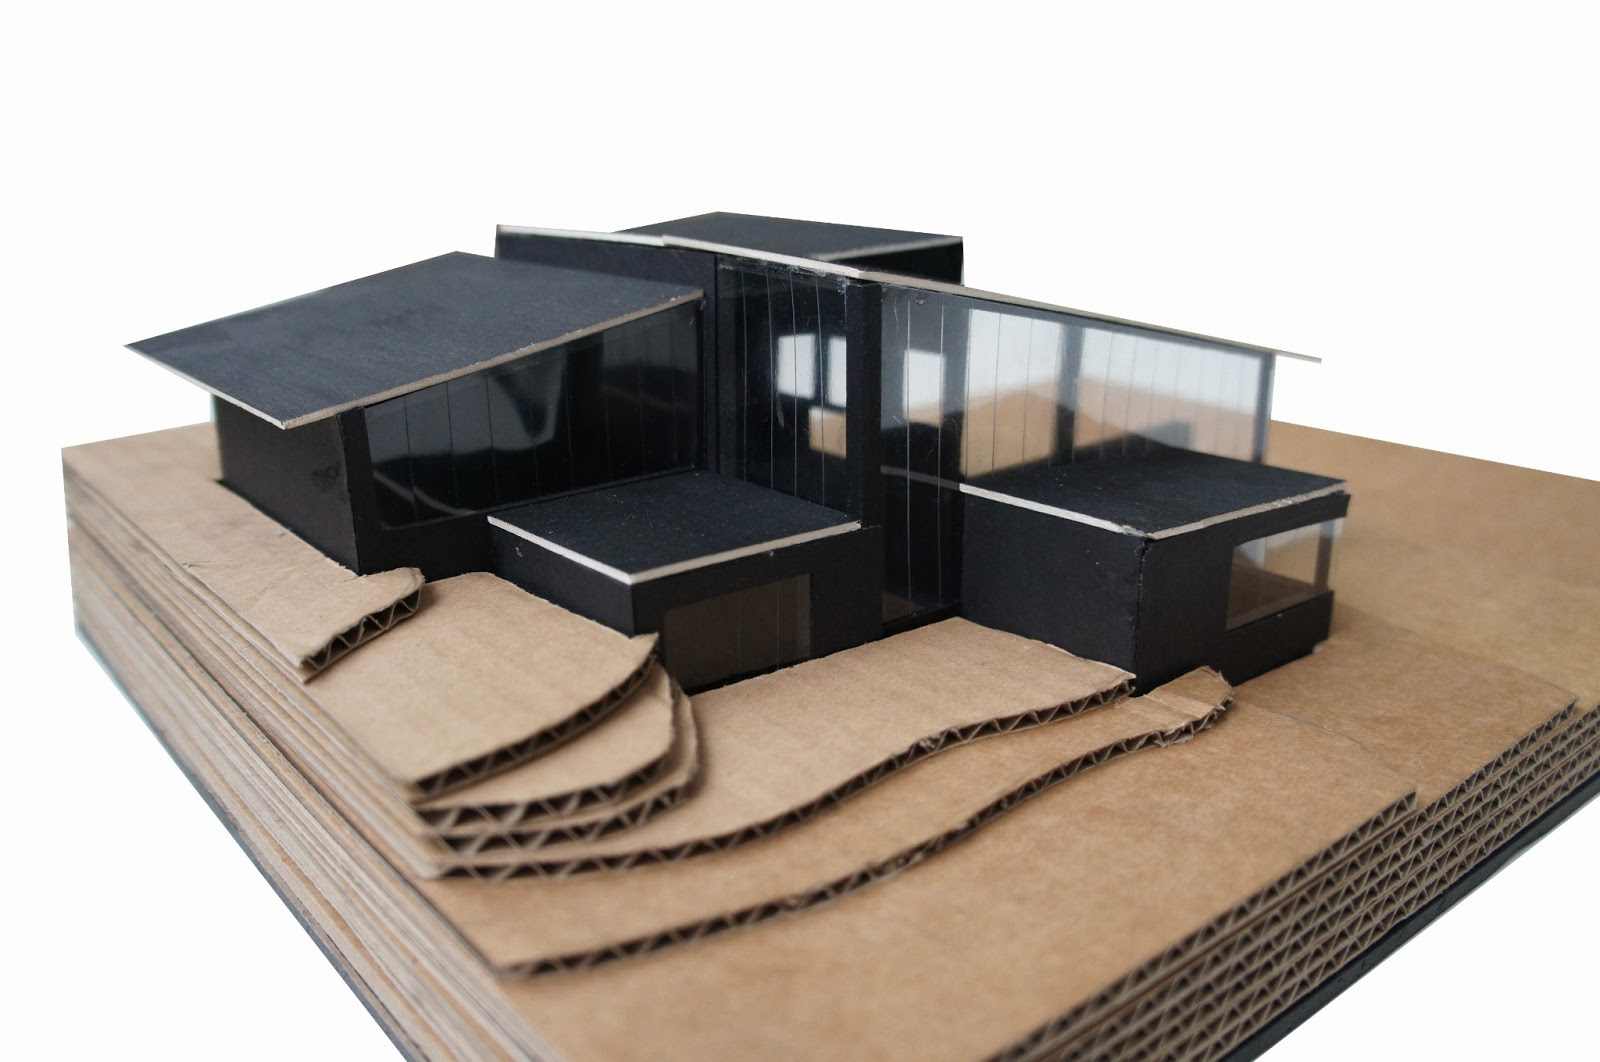 Architecture House Model recycle model house - house interior